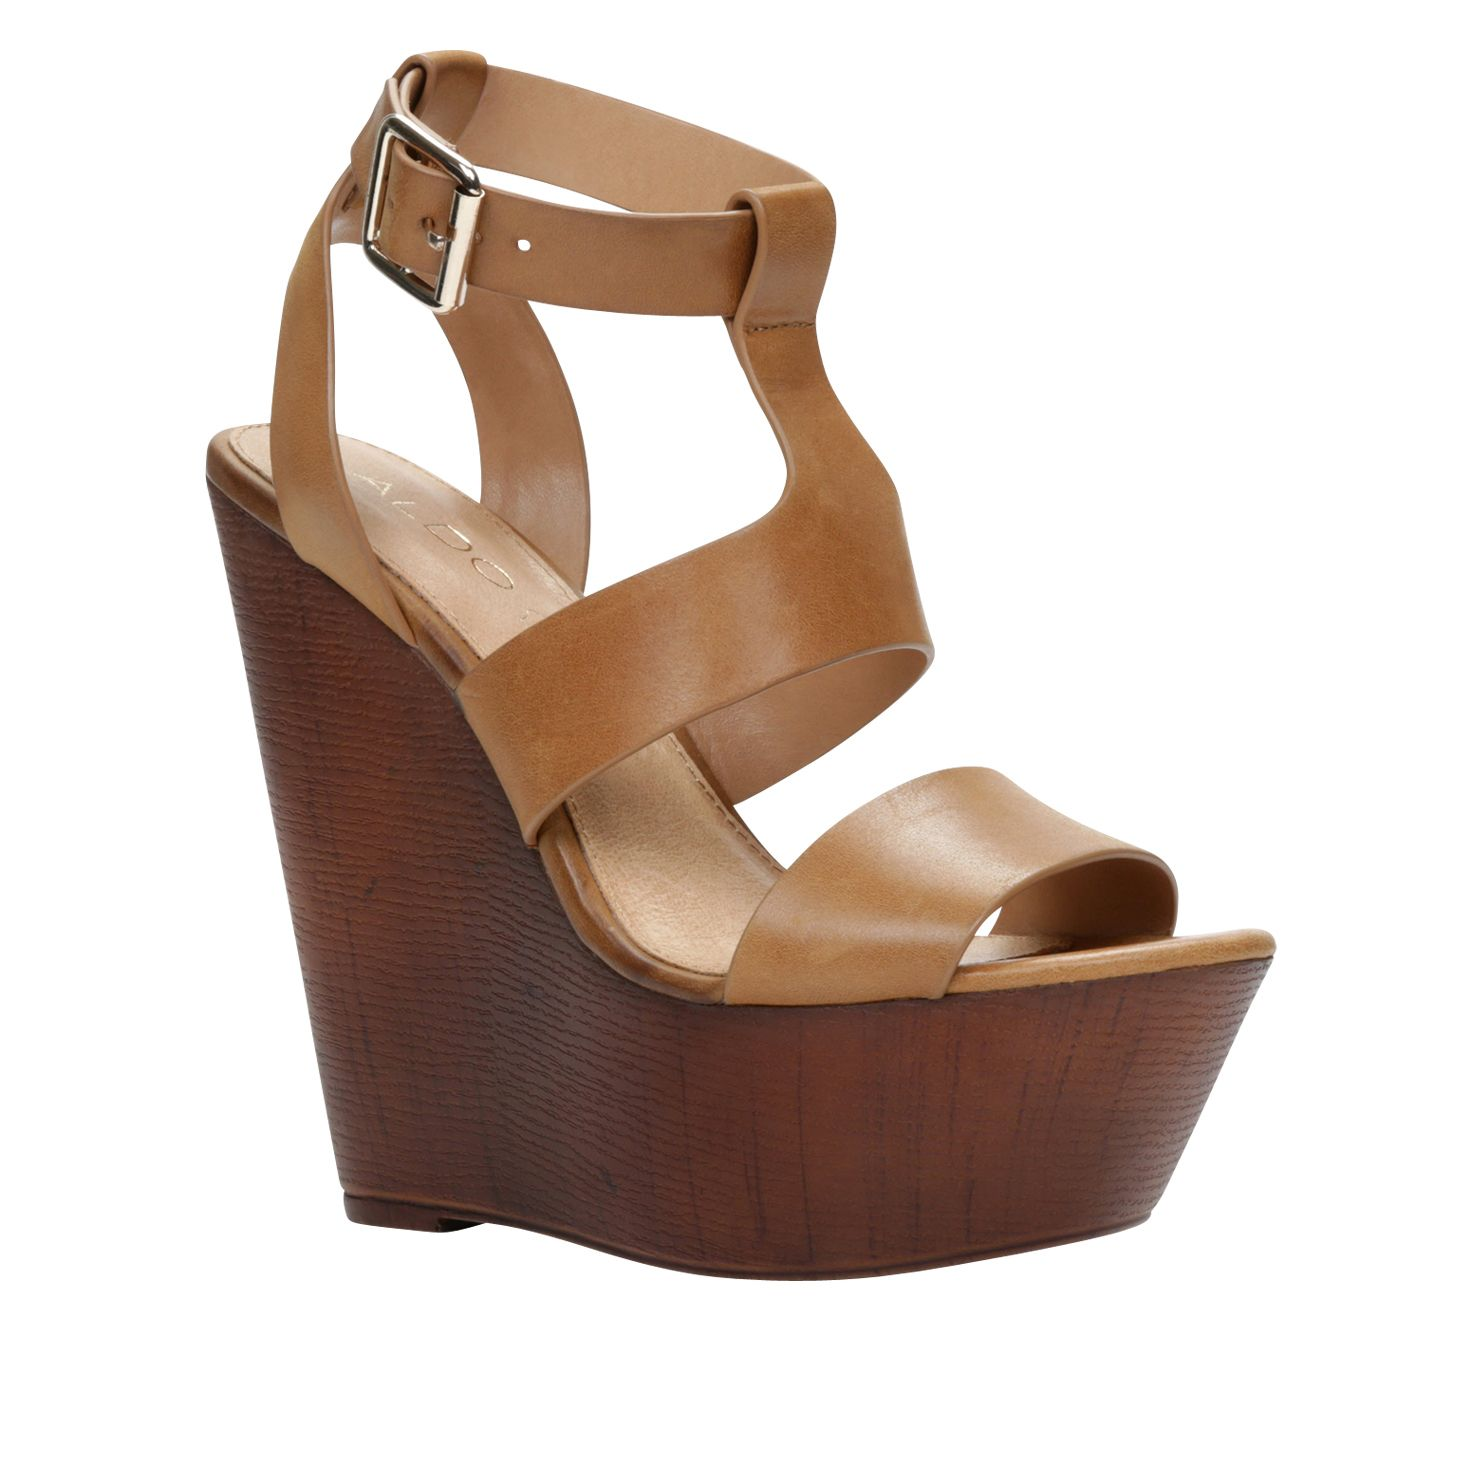 Ybaung wedge strappy sandals